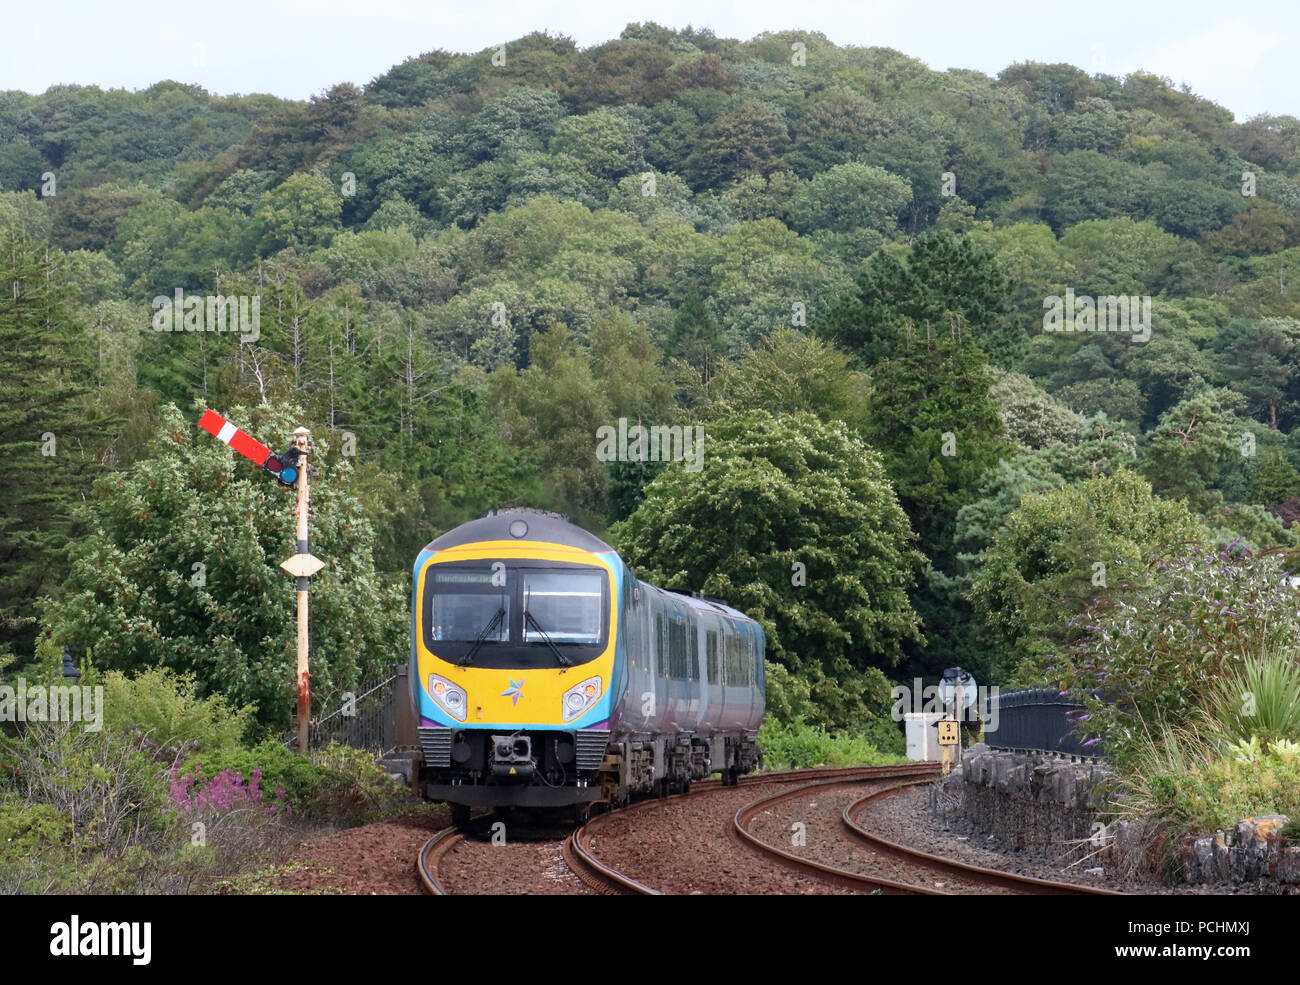 Class 185 diesel multiple-unit train in TransPennine express livery approaching Grange-over-Sands station with passenger service to Manchester Airport. - Stock Image